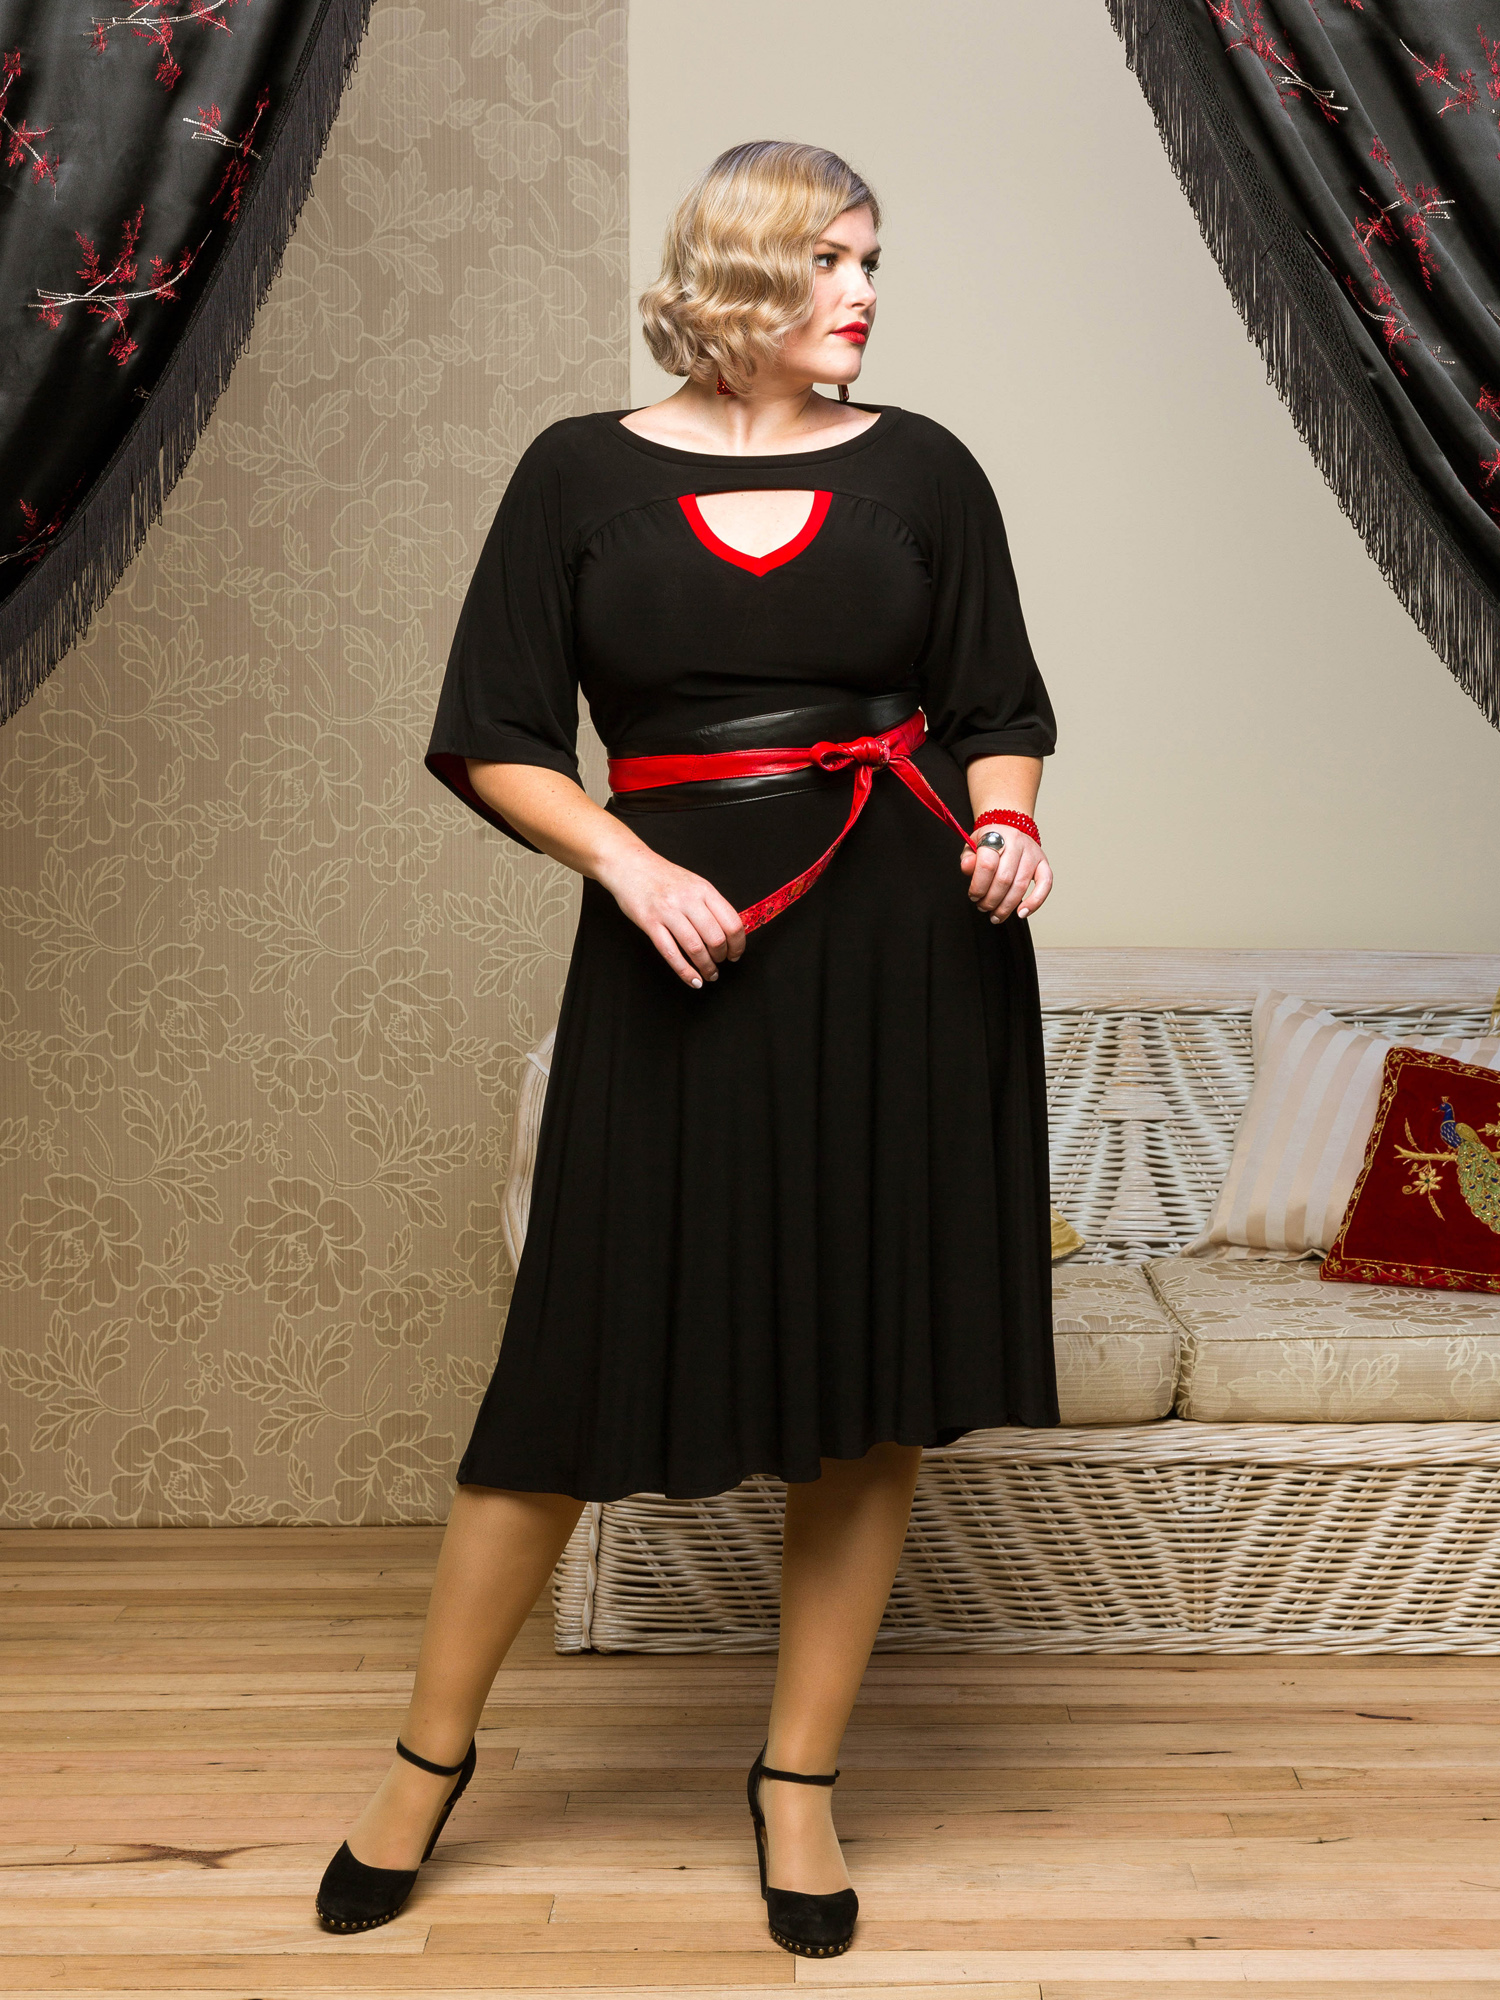 Shanghai Slipover Dress.blk.red